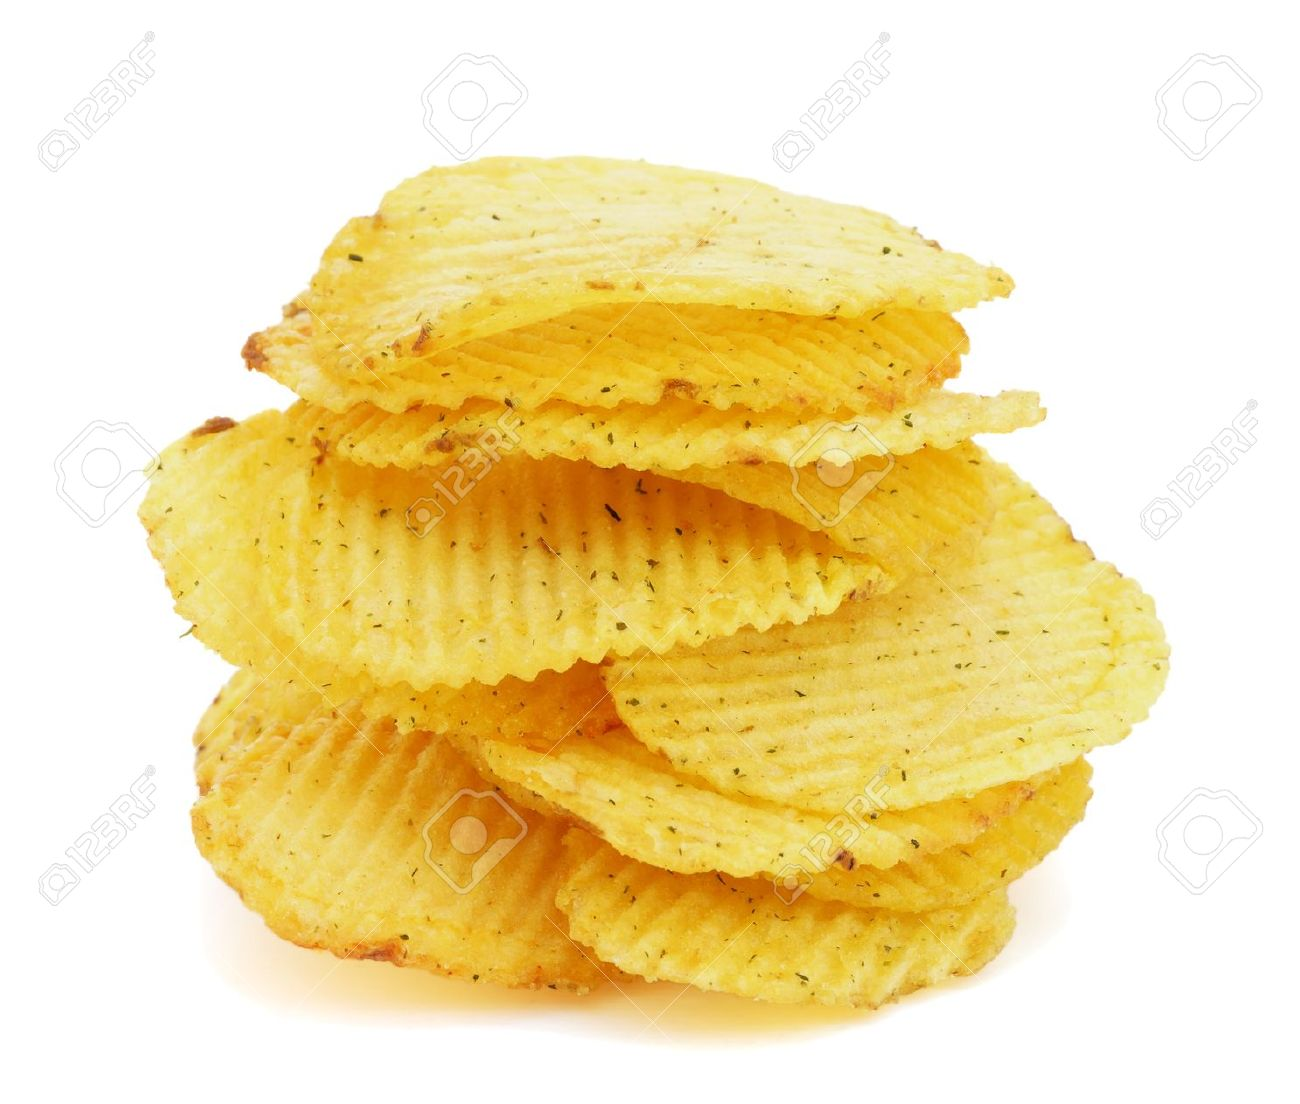 Chips clipart. Potato wafer pencil and